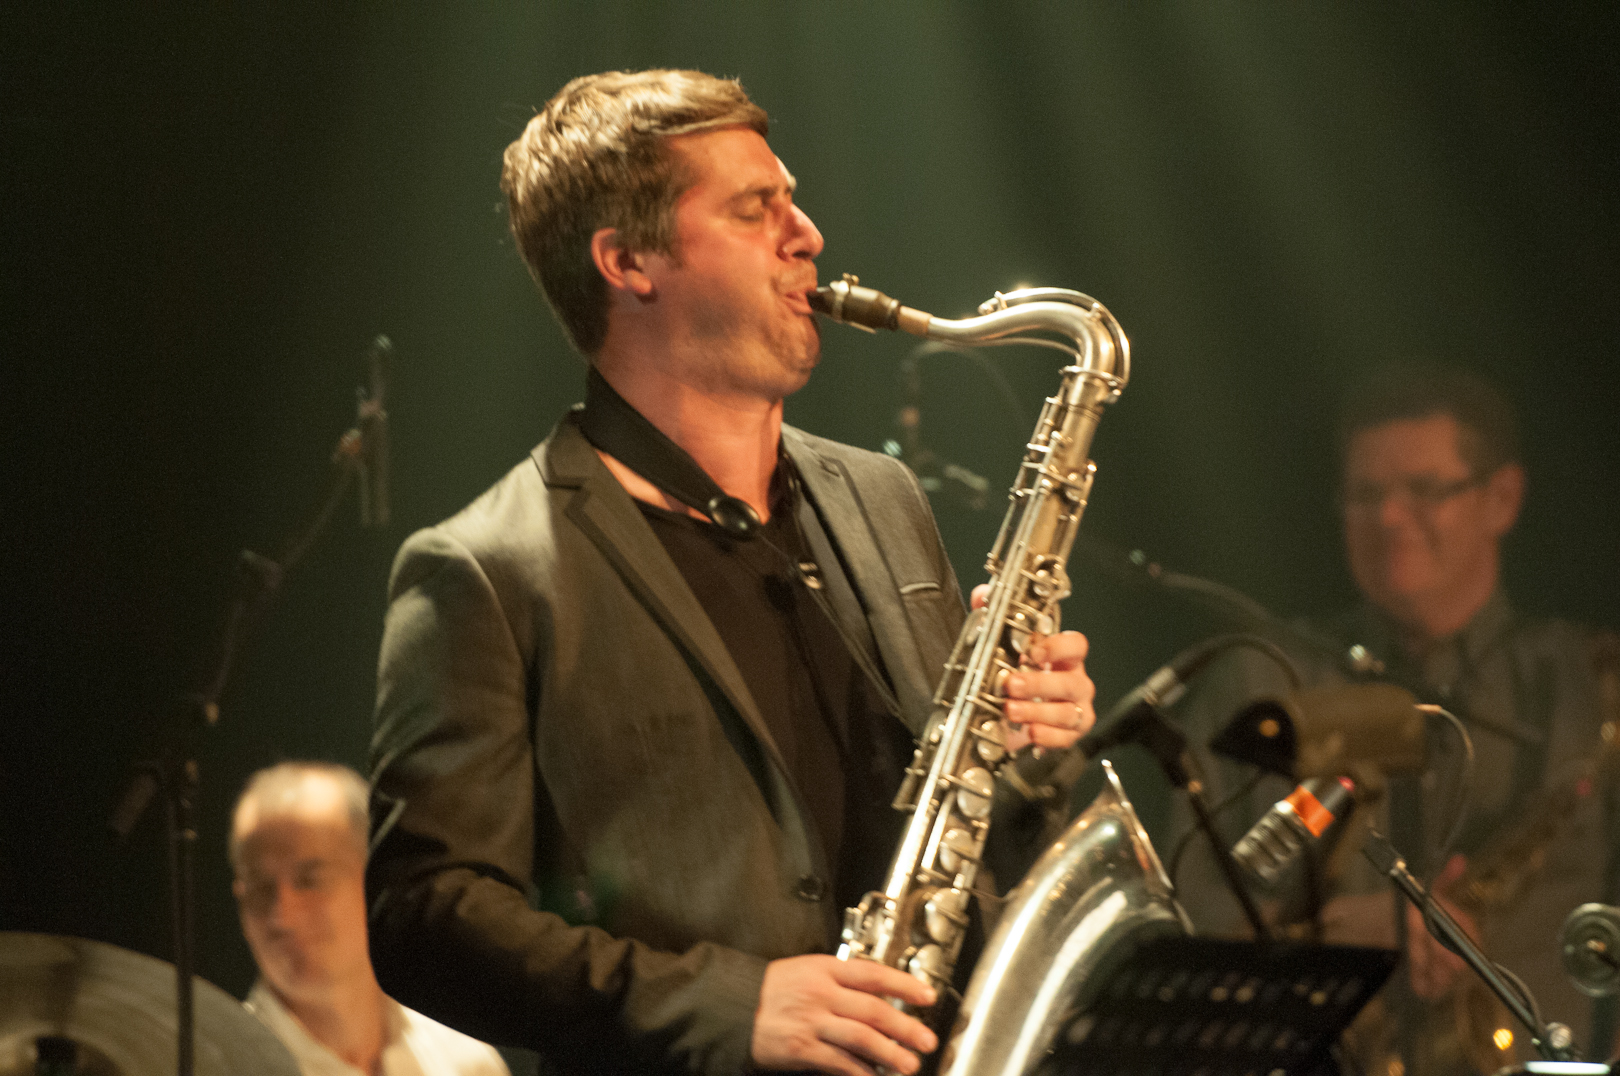 Chet Doxas with Remi Bolduc at the Montreal International Jazz Festival 2012